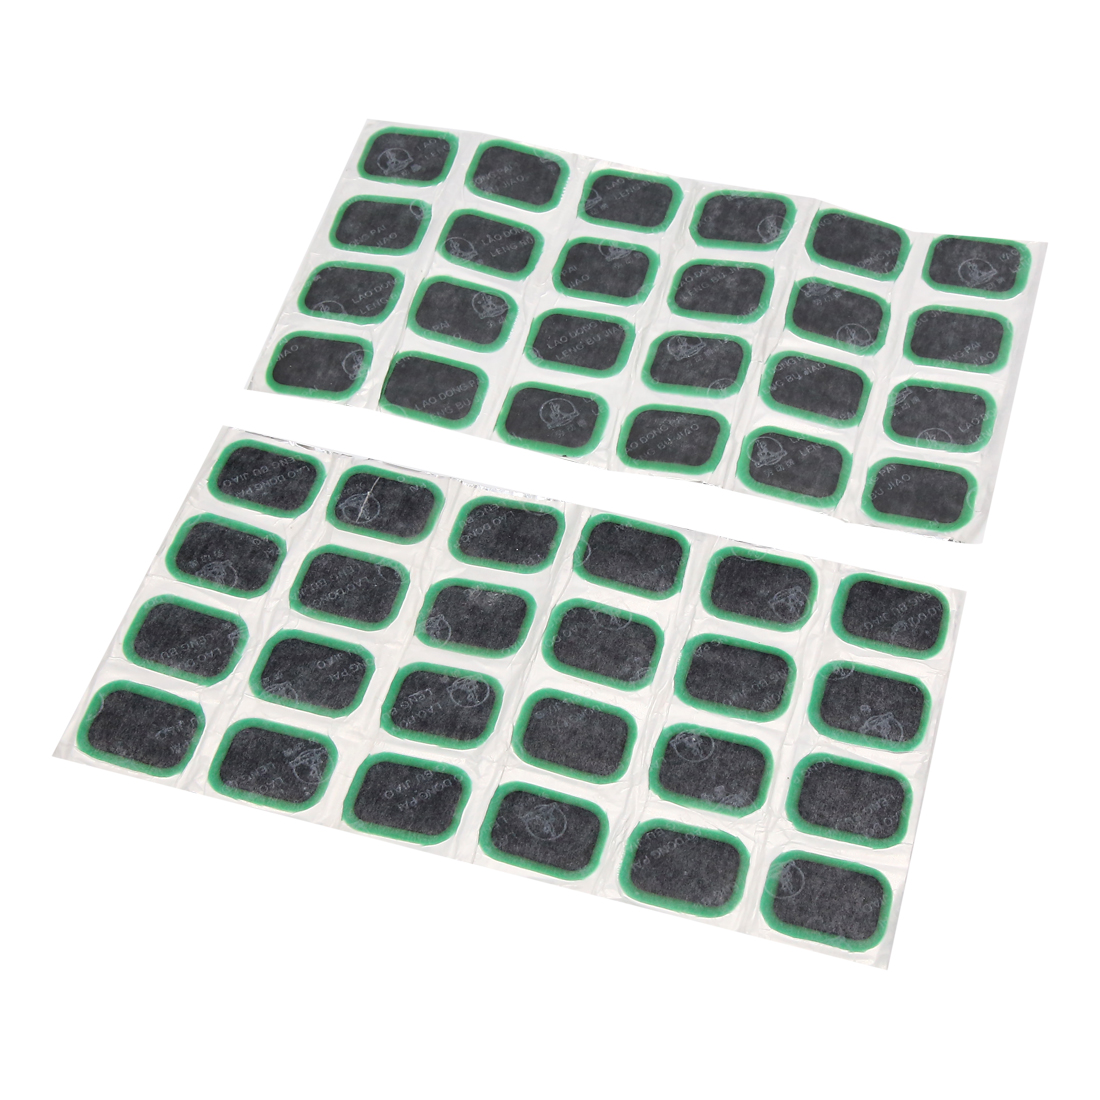 48pcs Green Motorcycle Car Tyre Puncture Patches Tire Repair Tool 35 x 24mm